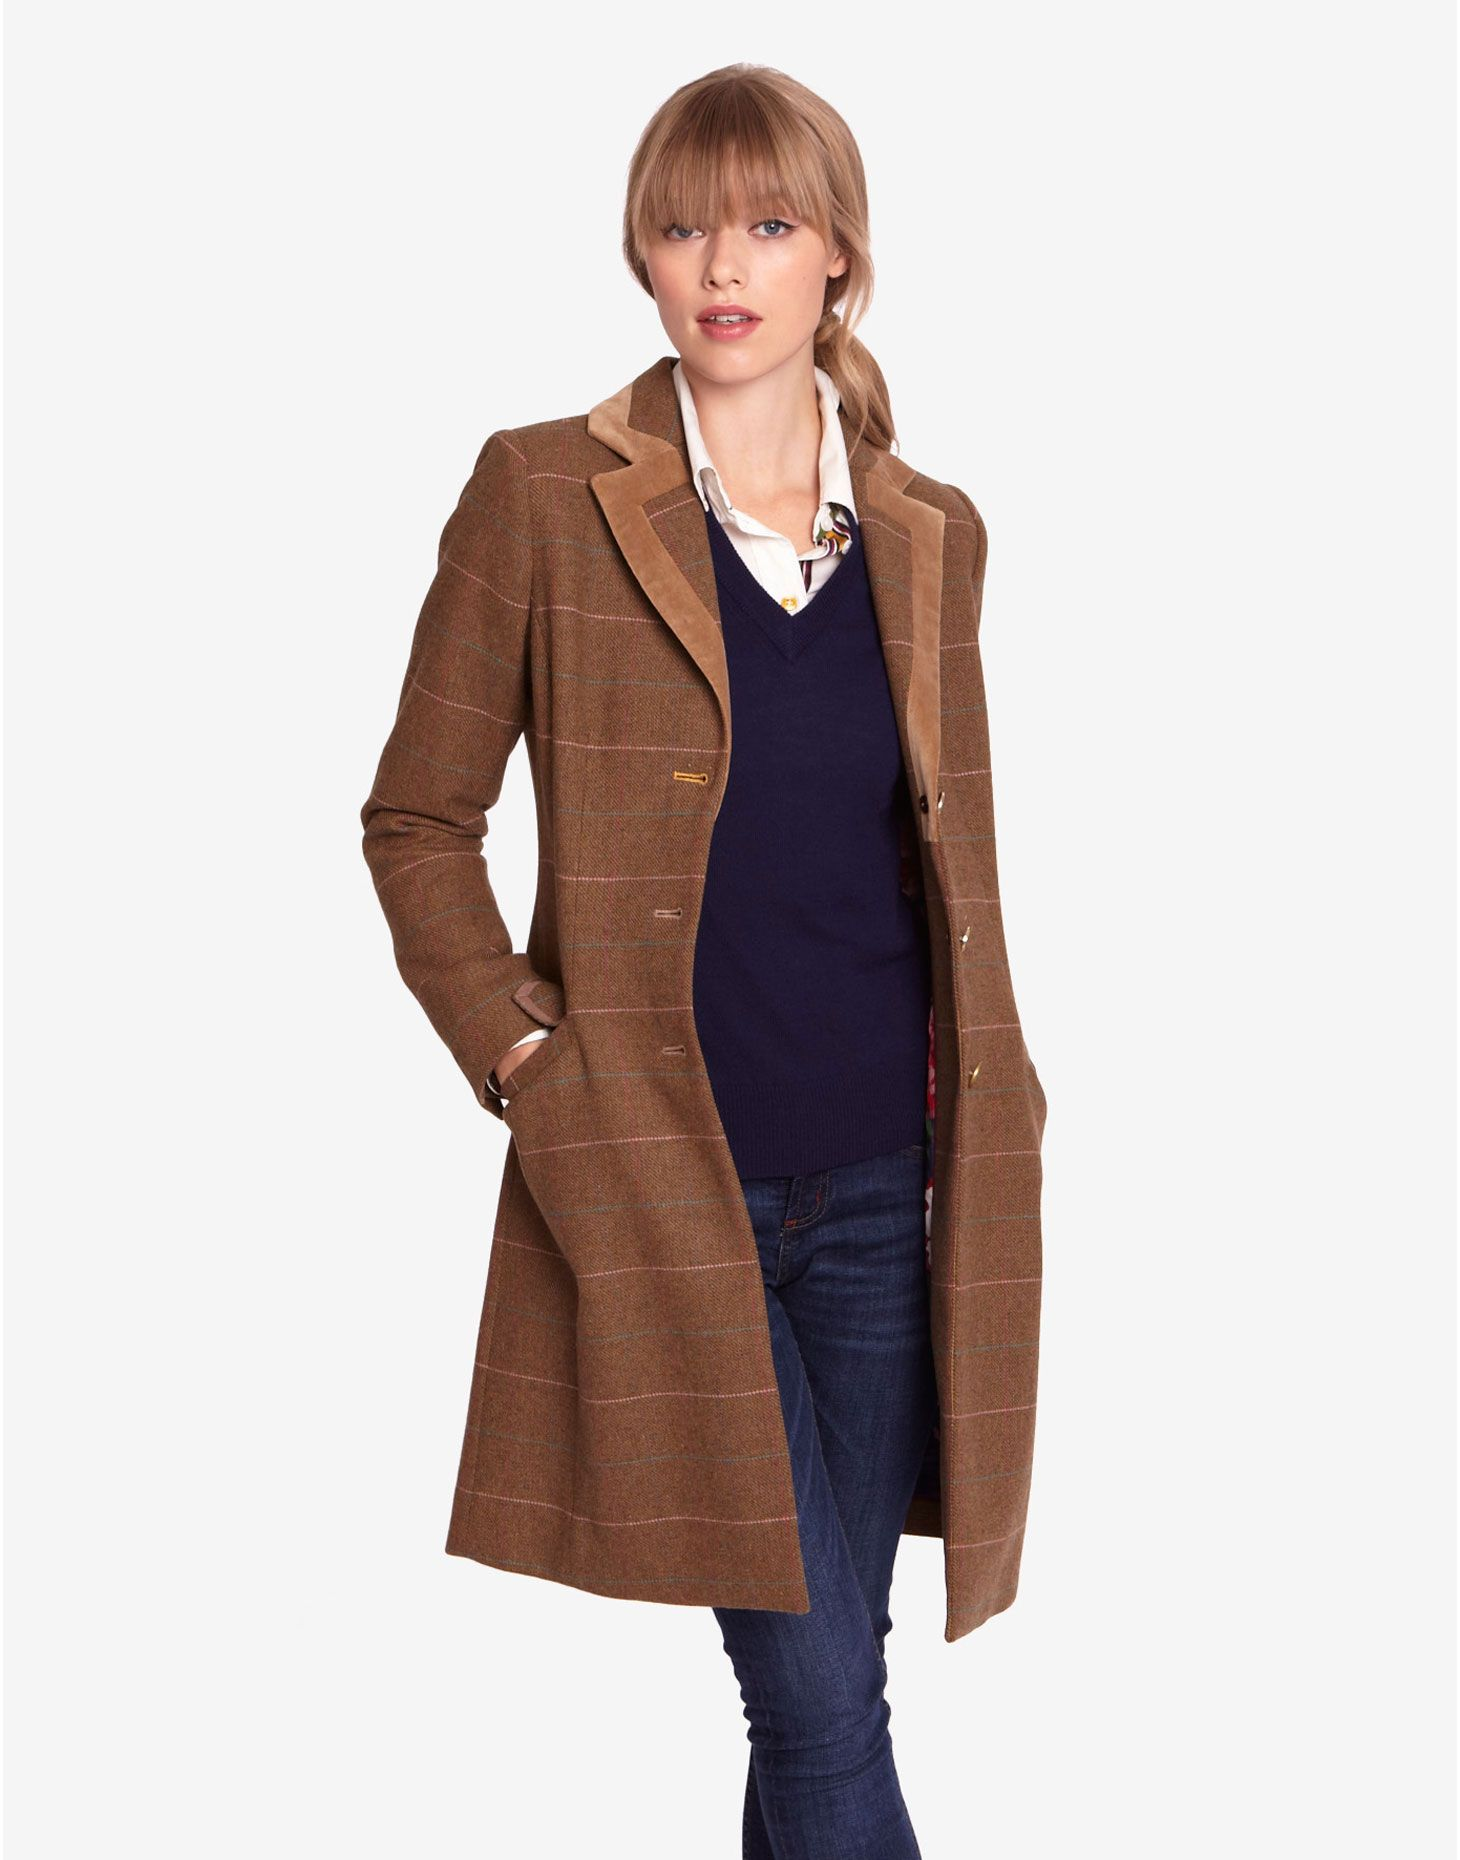 womens tweed coats | Sand Duchess Womens Tweed Coats | Joules UK ...